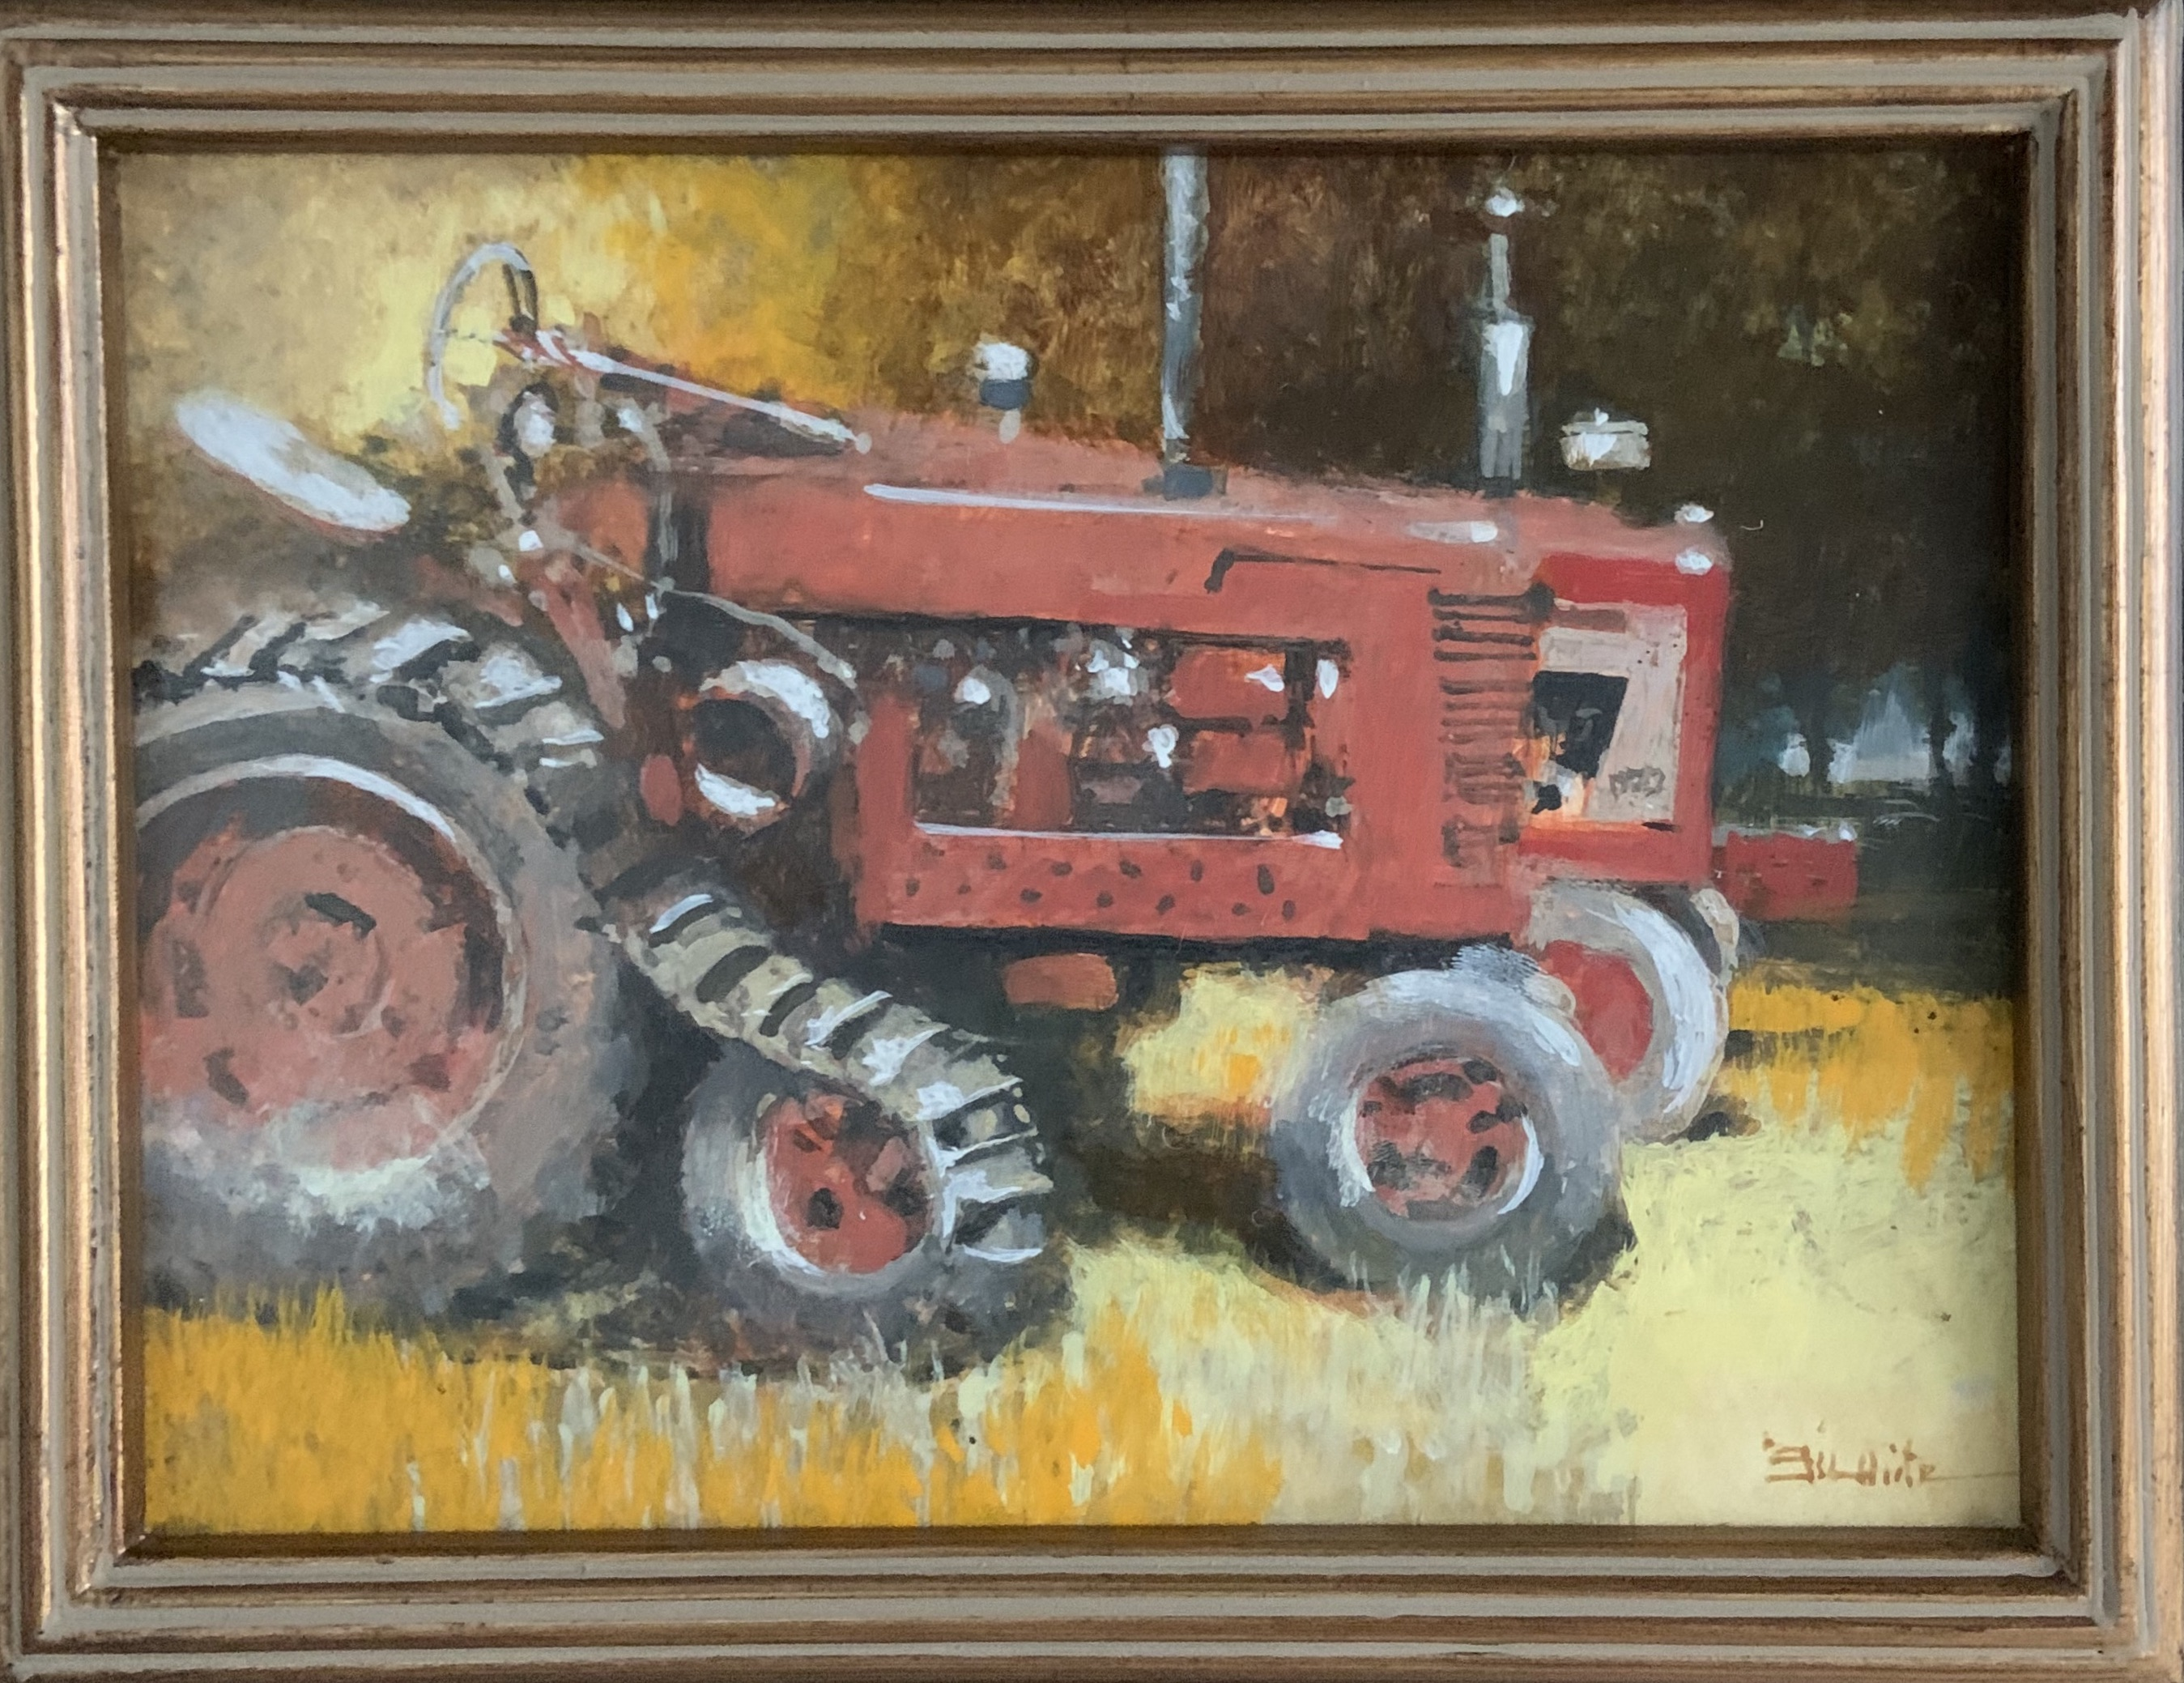 Traction-S. White, egg tempera 6x8 $450